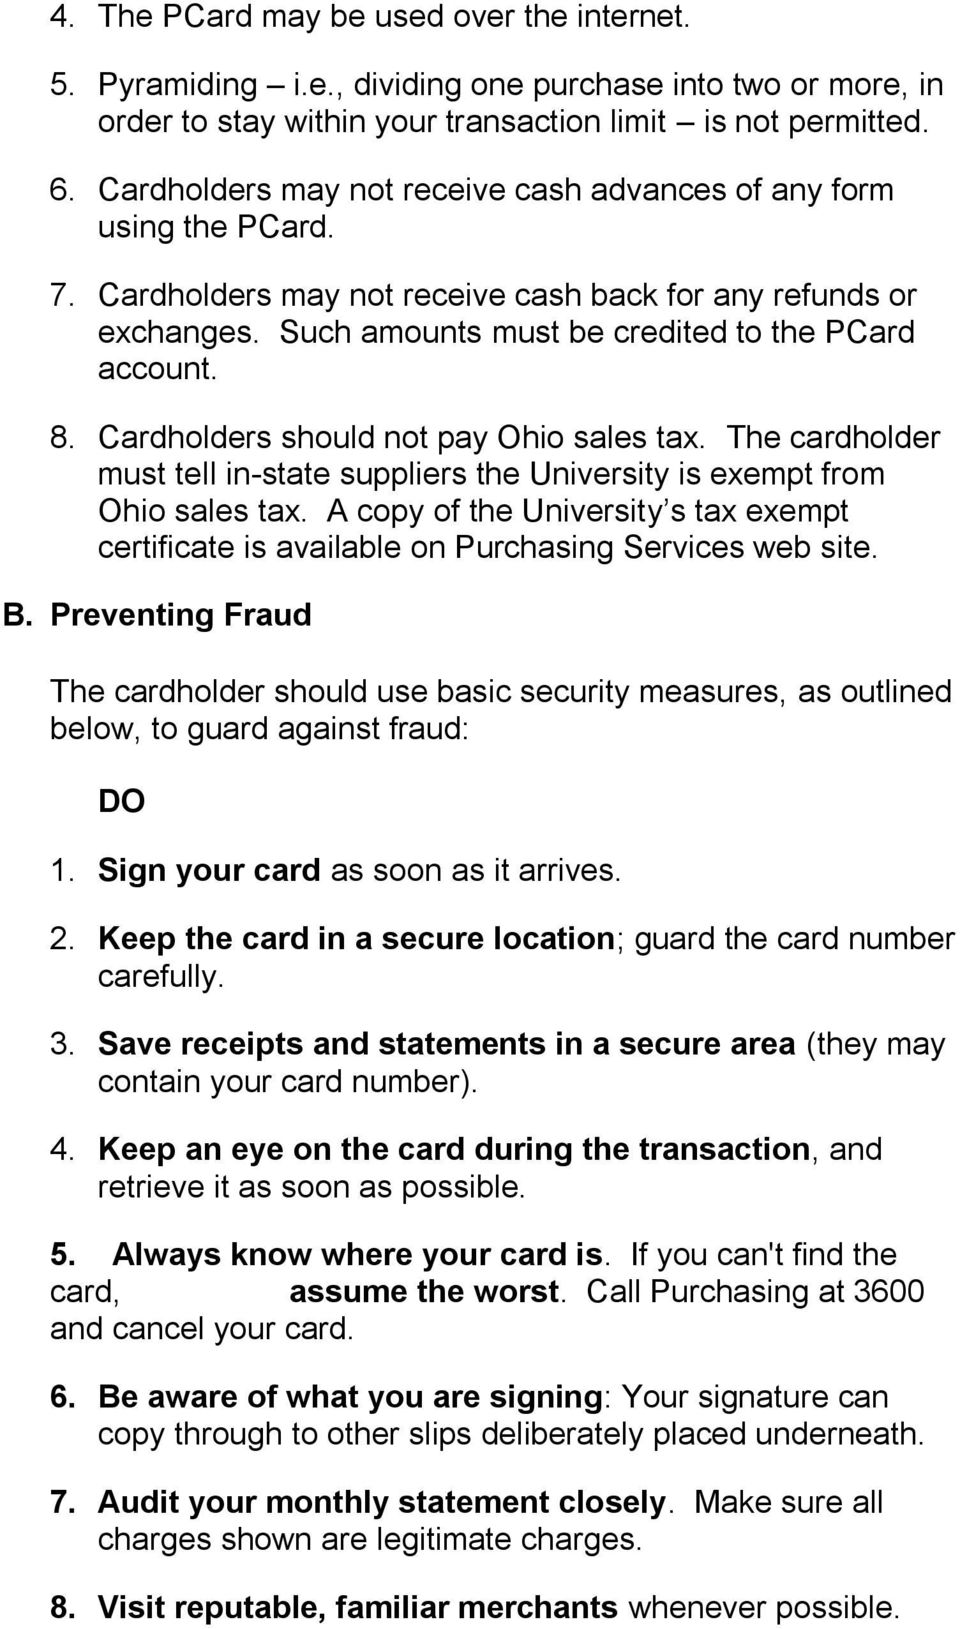 Cardholders should not pay Ohio sales tax. The cardholder must tell in-state suppliers the University is exempt from Ohio sales tax.